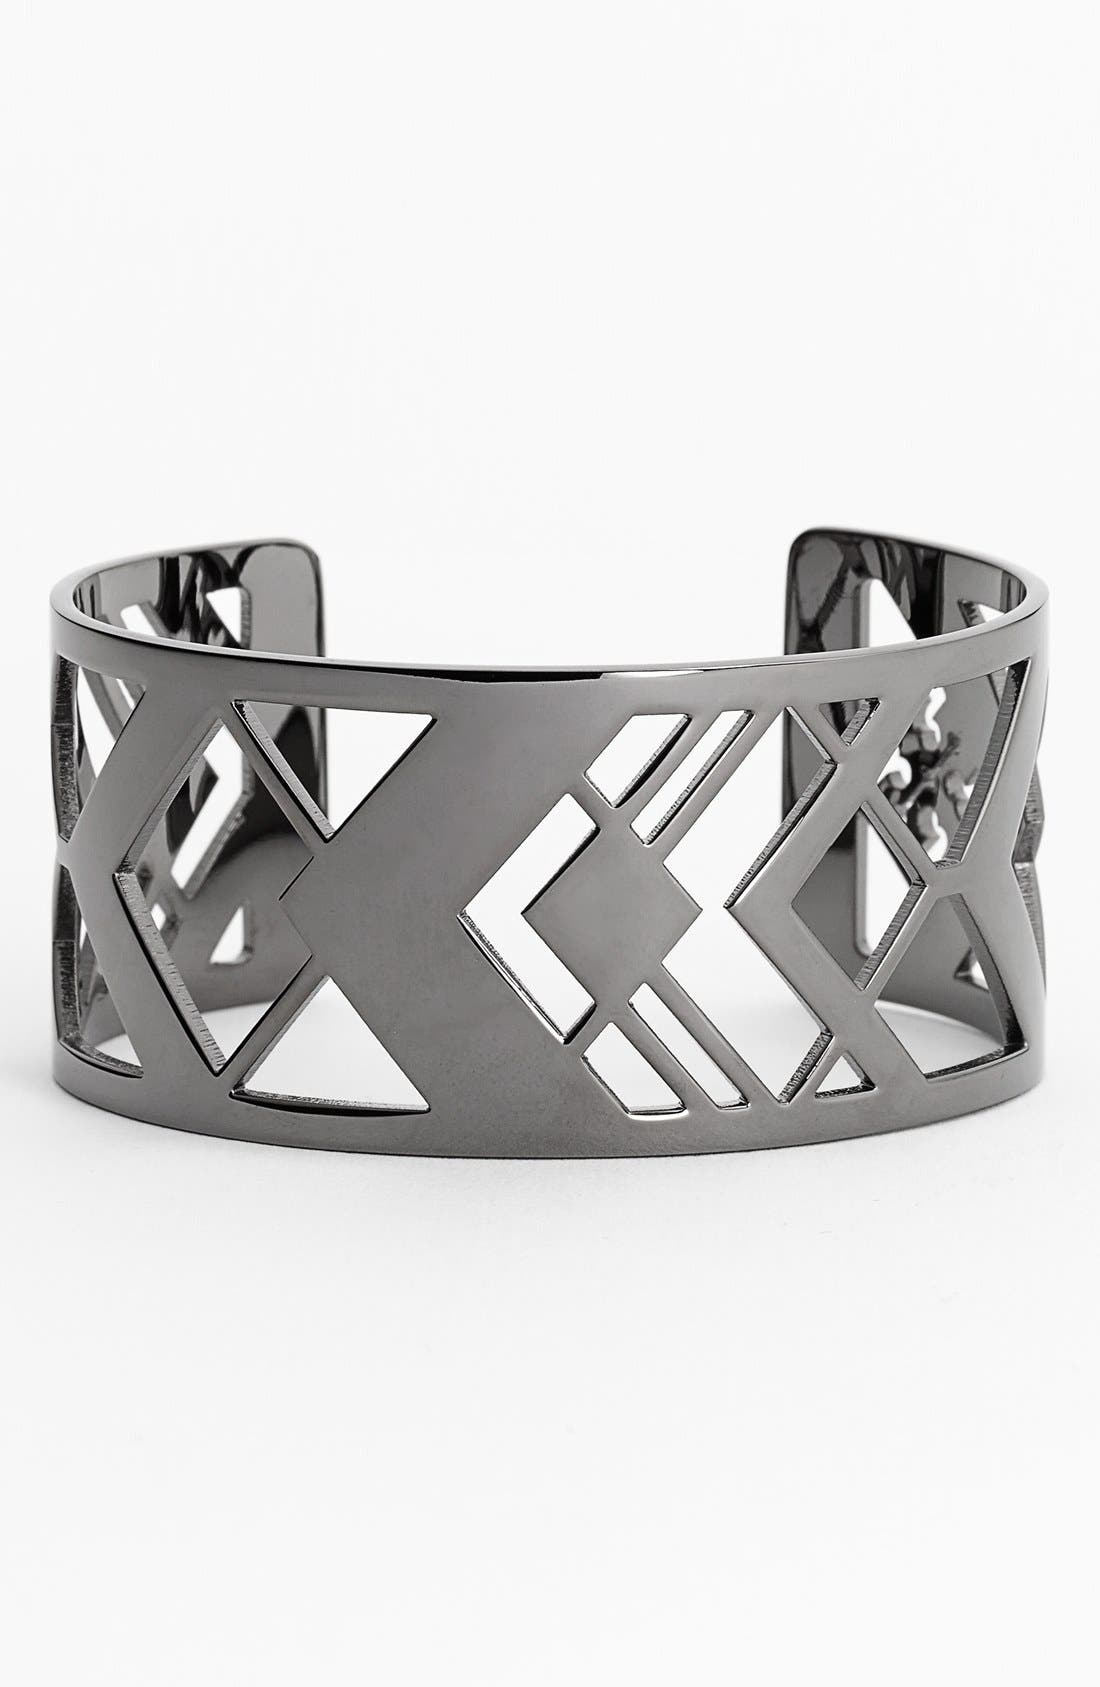 Alternate Image 1 Selected - Tory Burch 'Chevron' Cutout Cuff